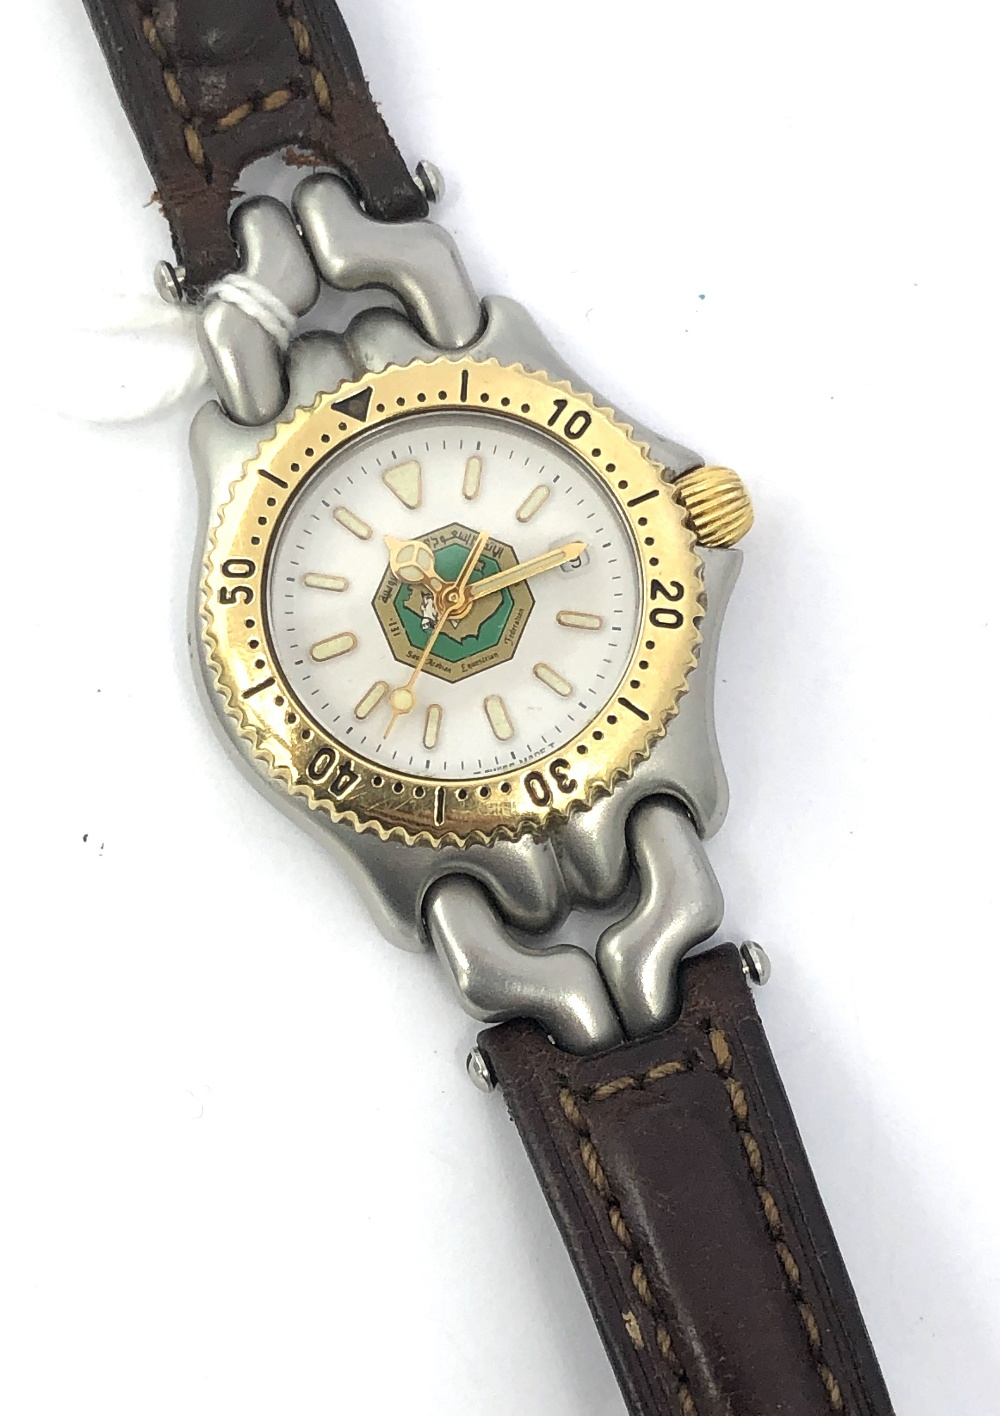 Lot 40 - Ladies Tag Heuer stainless steel & yellow metal wristwatch with white dial with gold batons, central